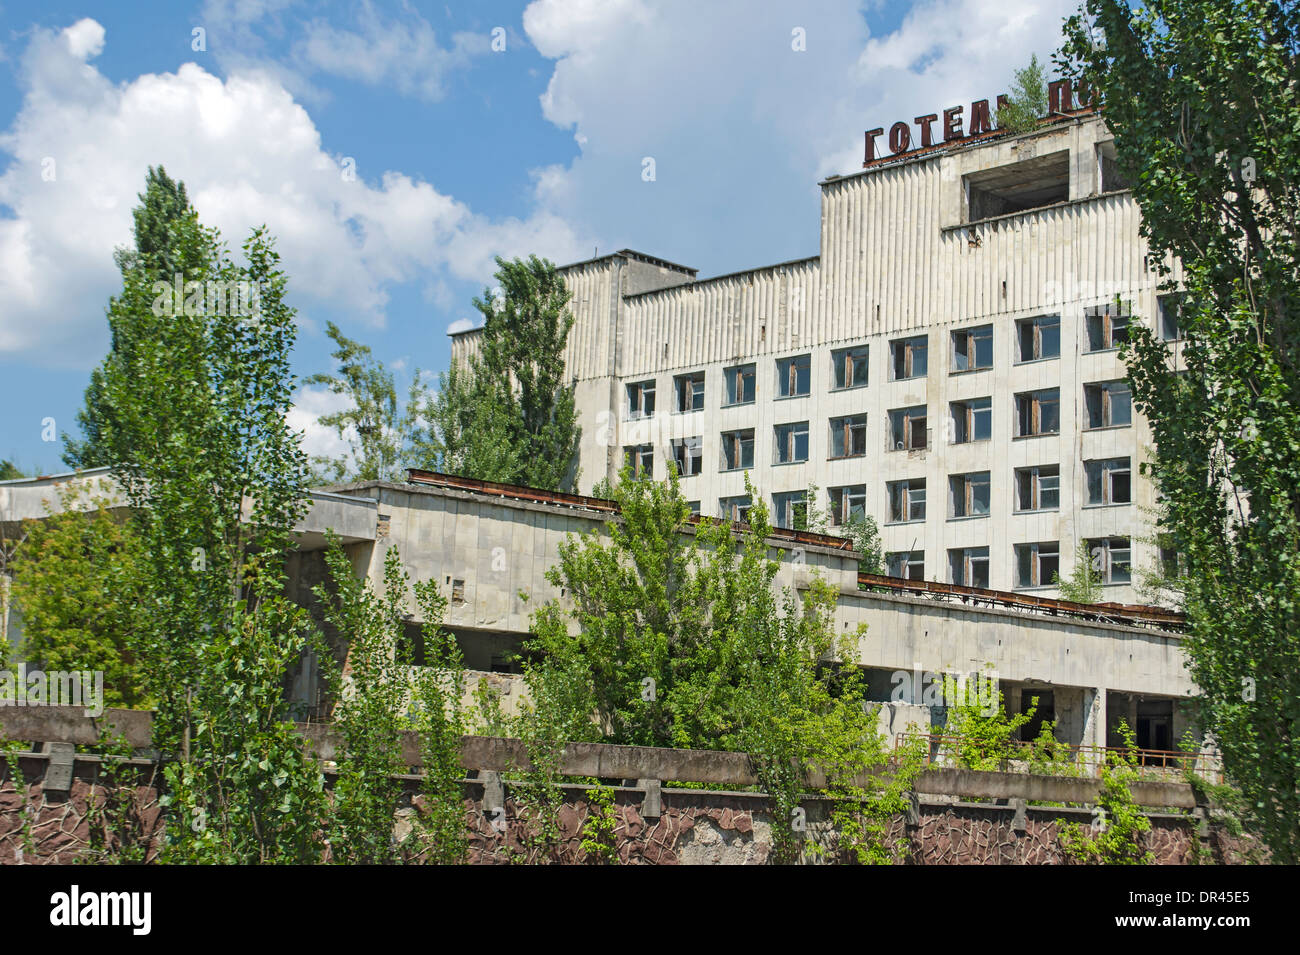 Village Ruined by Chernobyl Nuclear Accident, Ukraine - Stock Image